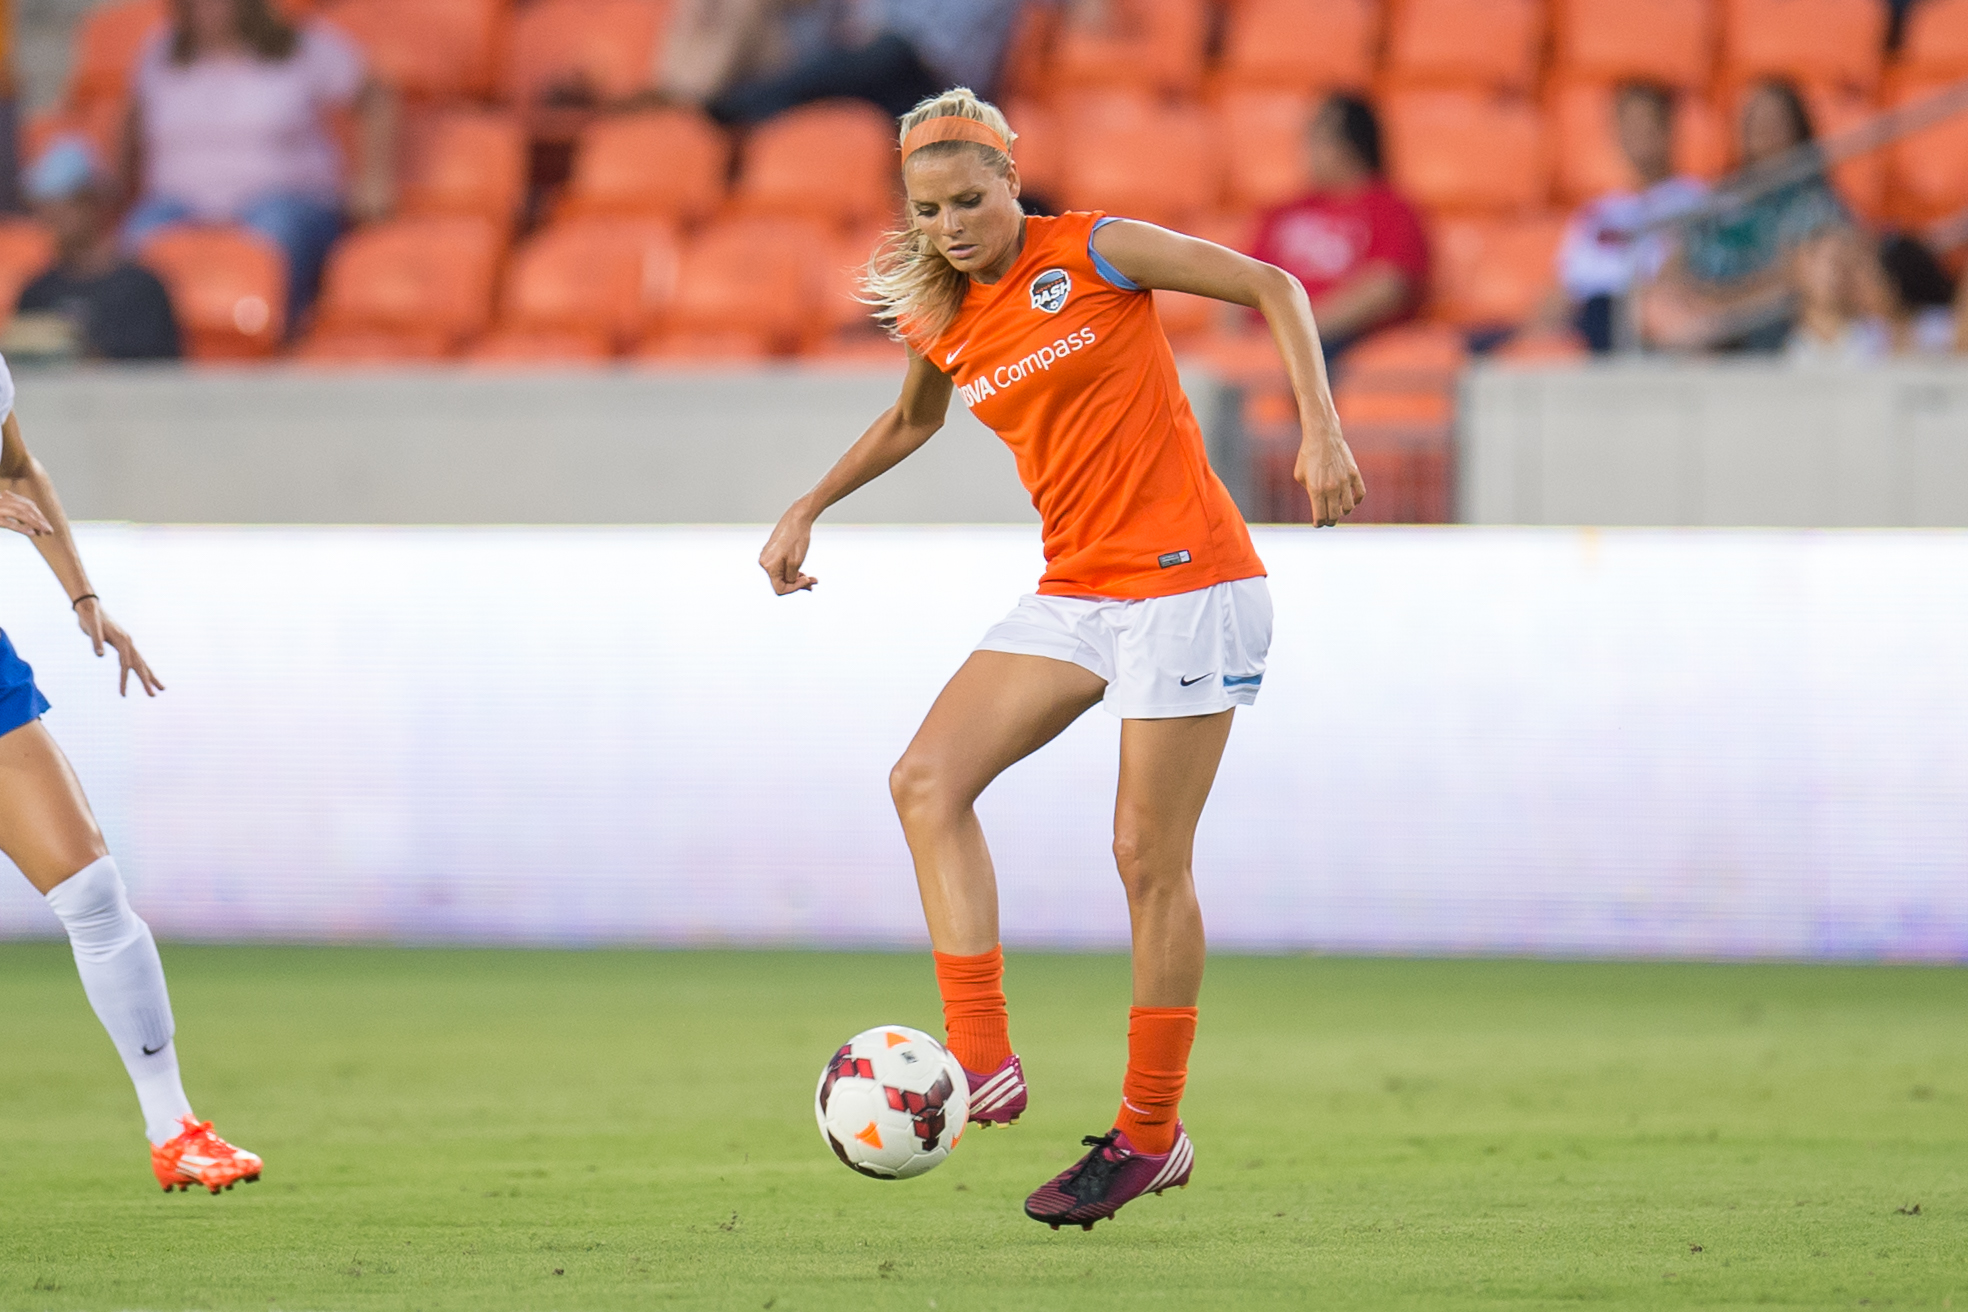 Henderson will be back with the Dash next season.